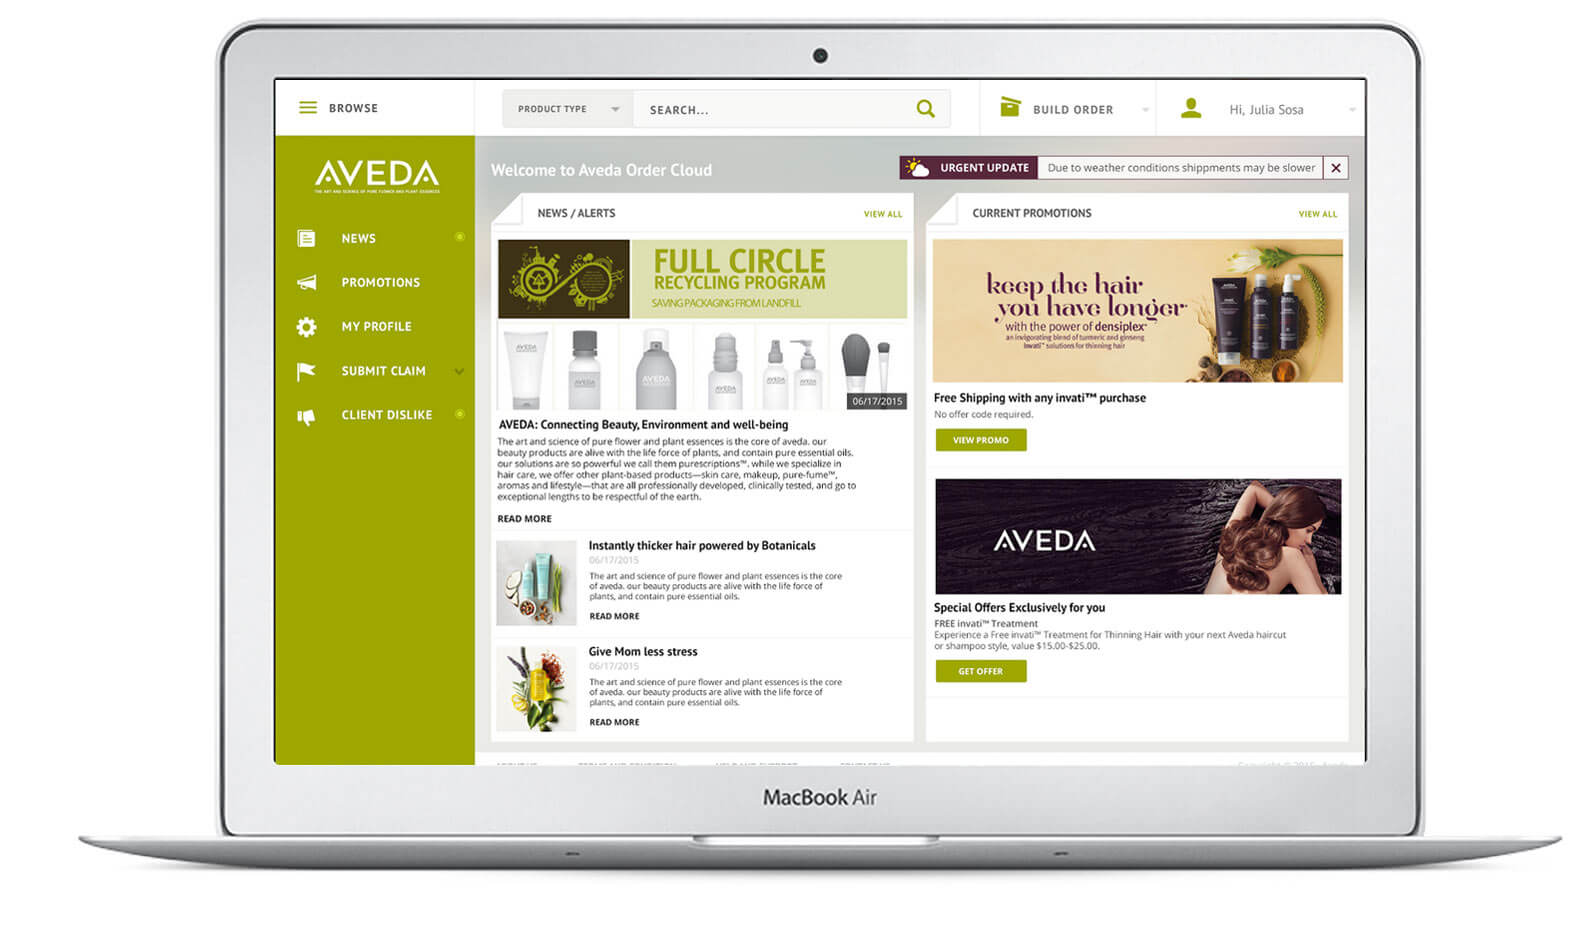 Echidna commerce Agency Work